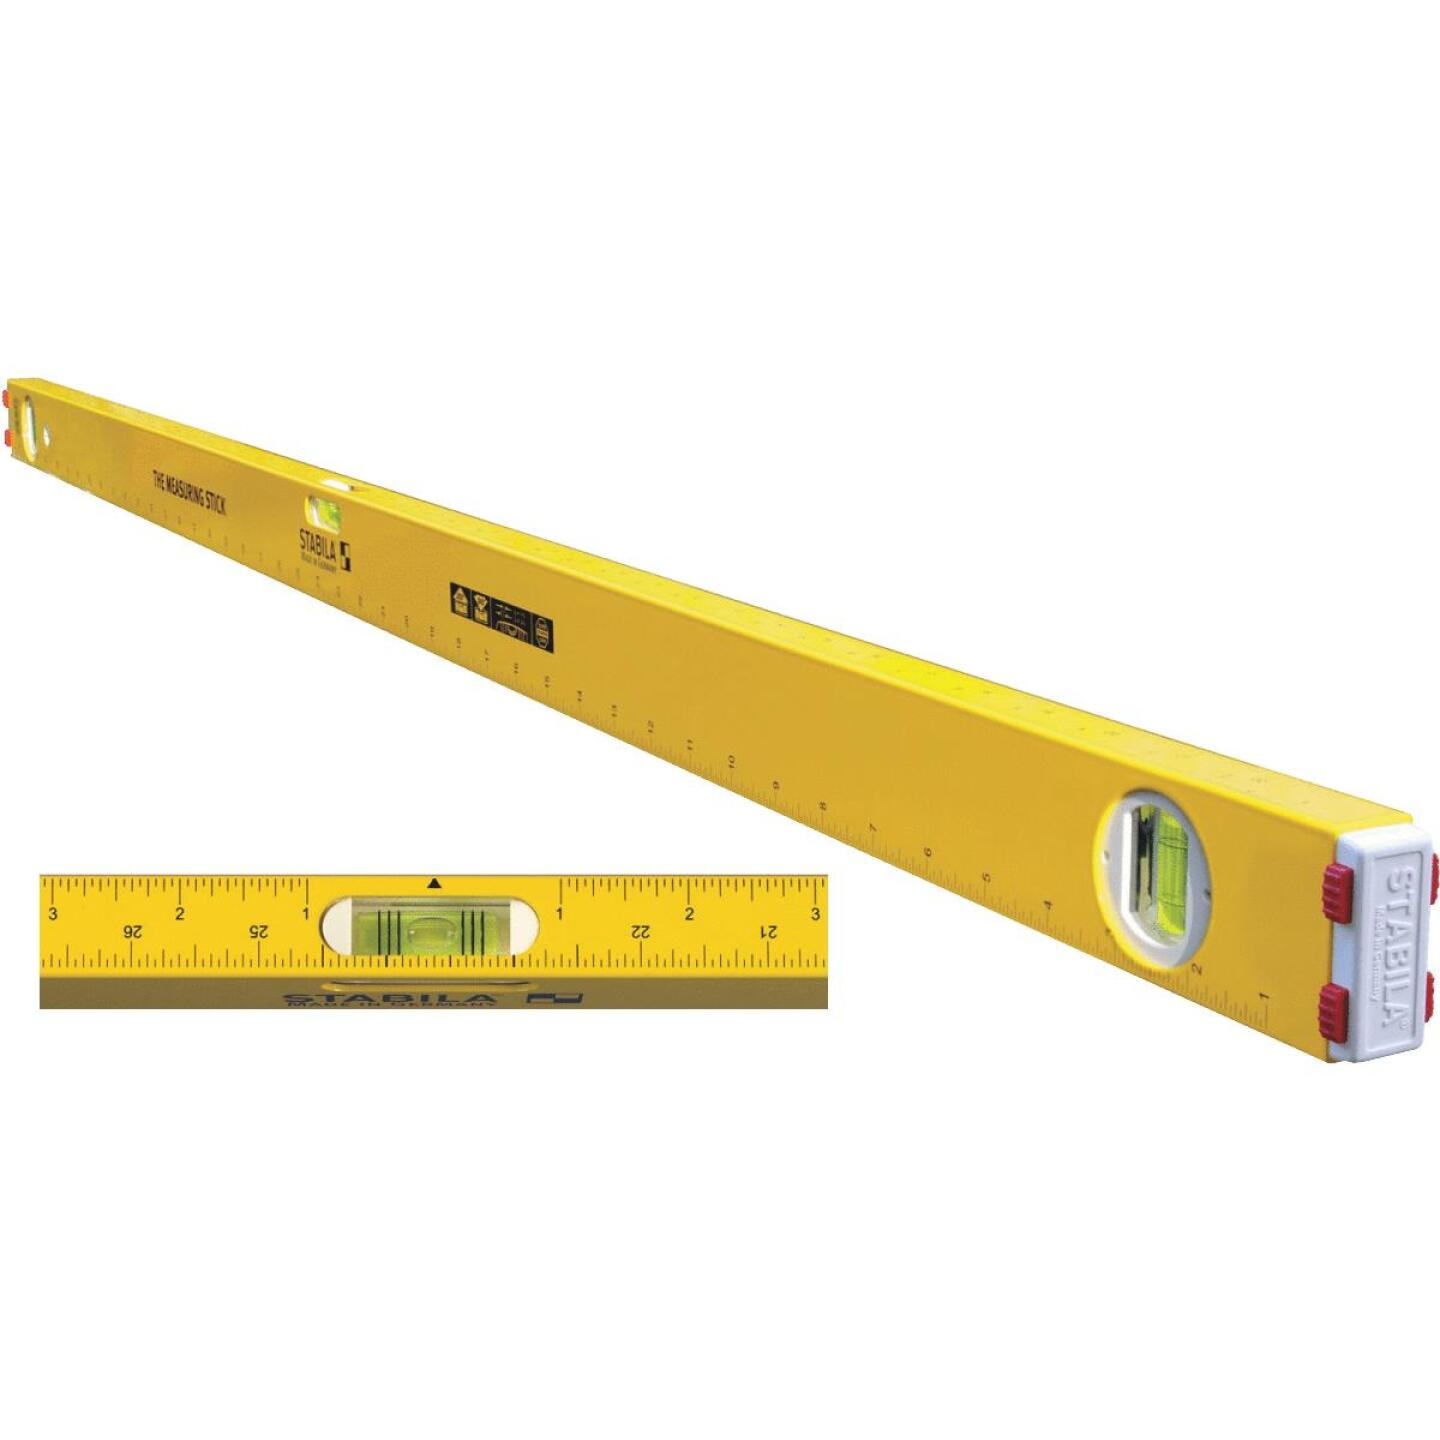 Stabila Measuring Stick 48 In. Aluminum Box Level Image 1